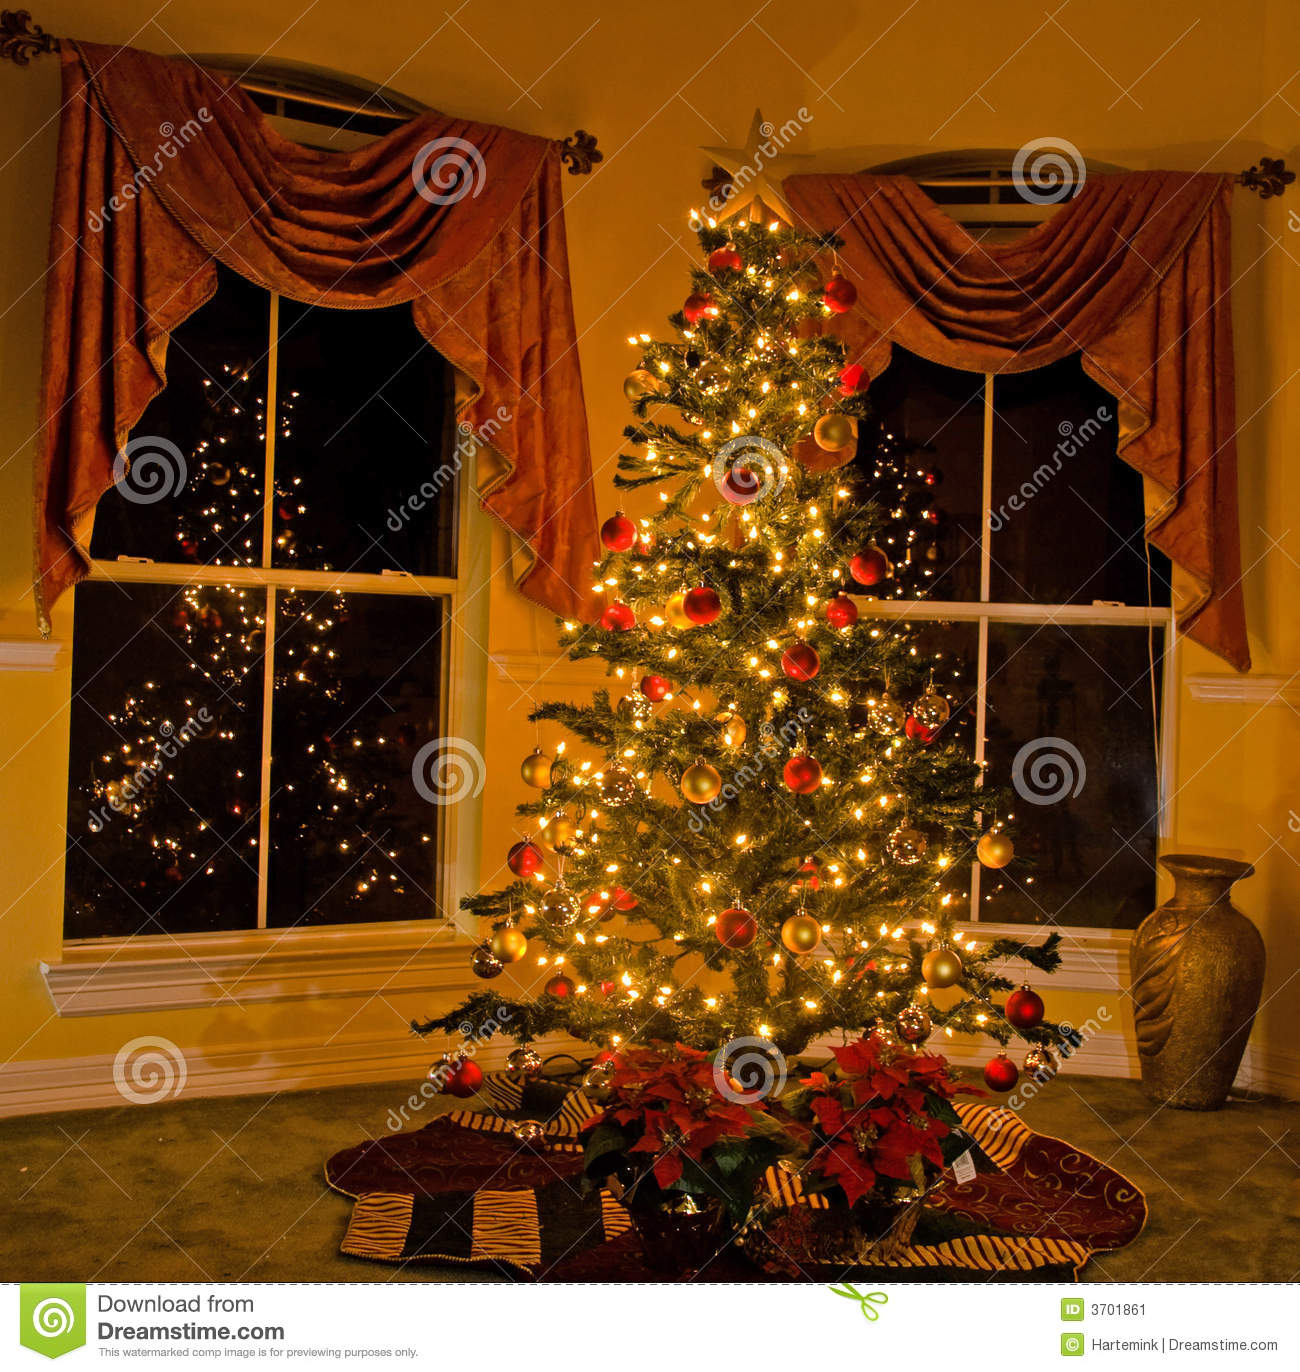 Free Animated Fireplace Wallpaper Lighted Christmas Tree In Cozy Home Stock Image Image